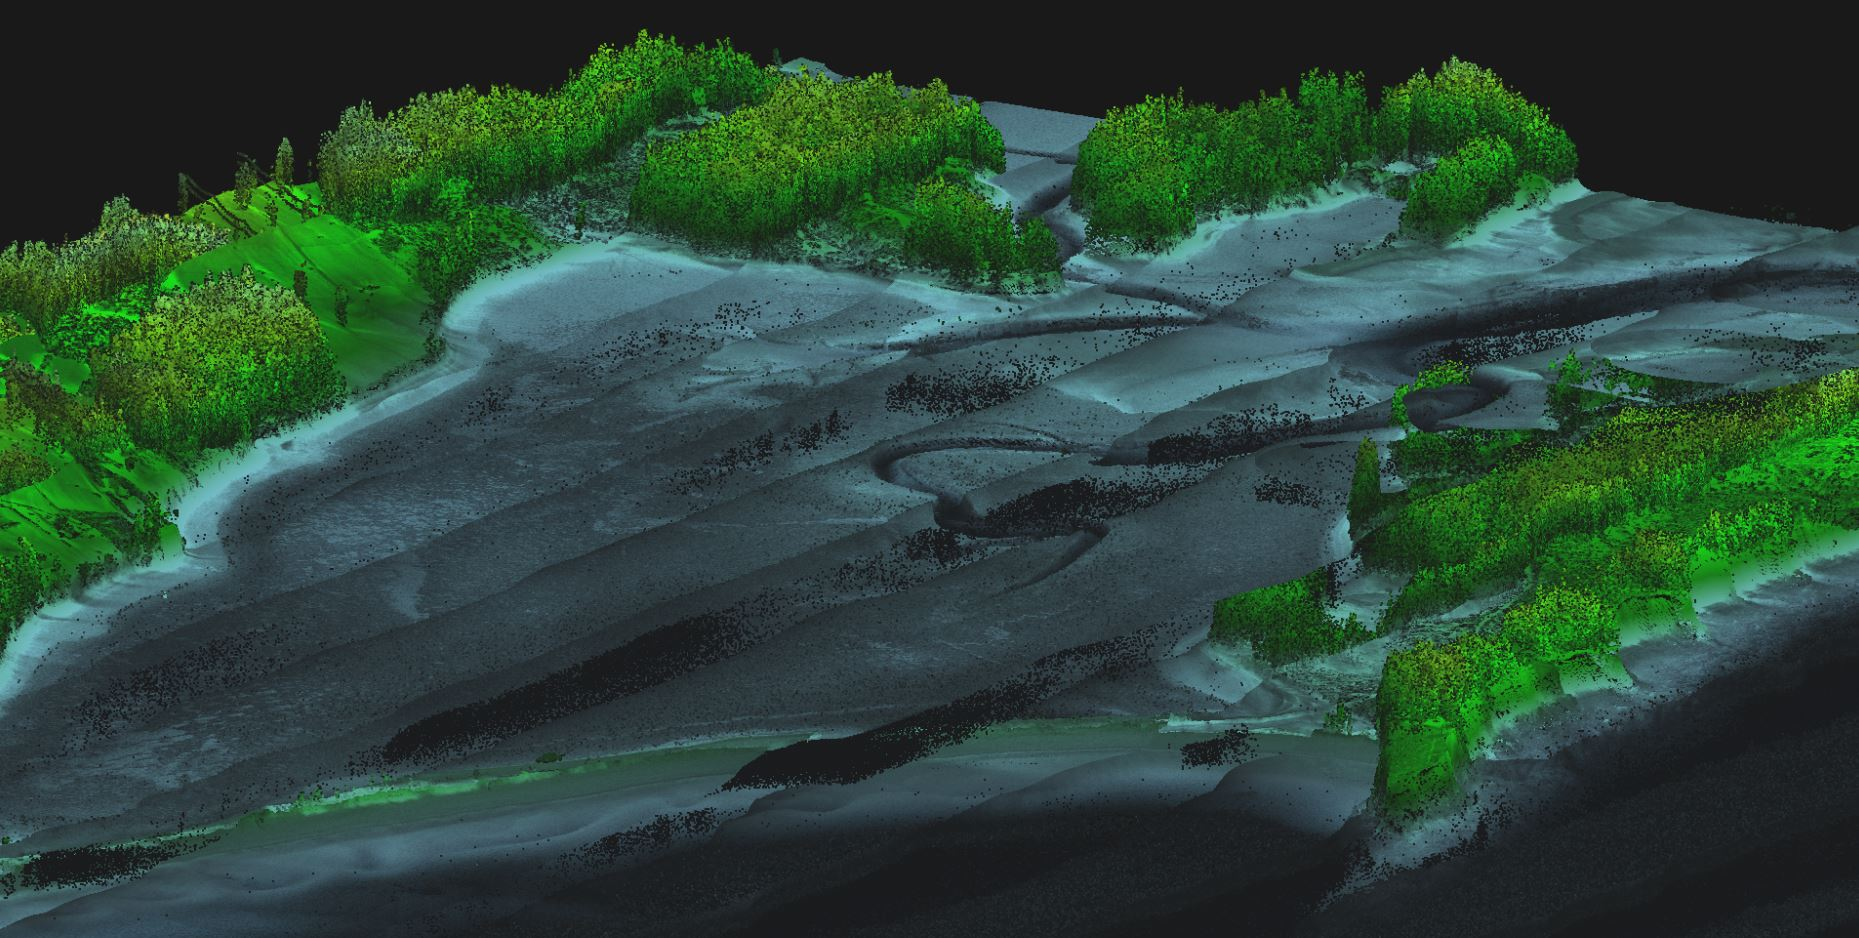 Bathymetric LIDAR - LiDAR Survey Studio smooth constant 3D viewing of LIDAR points